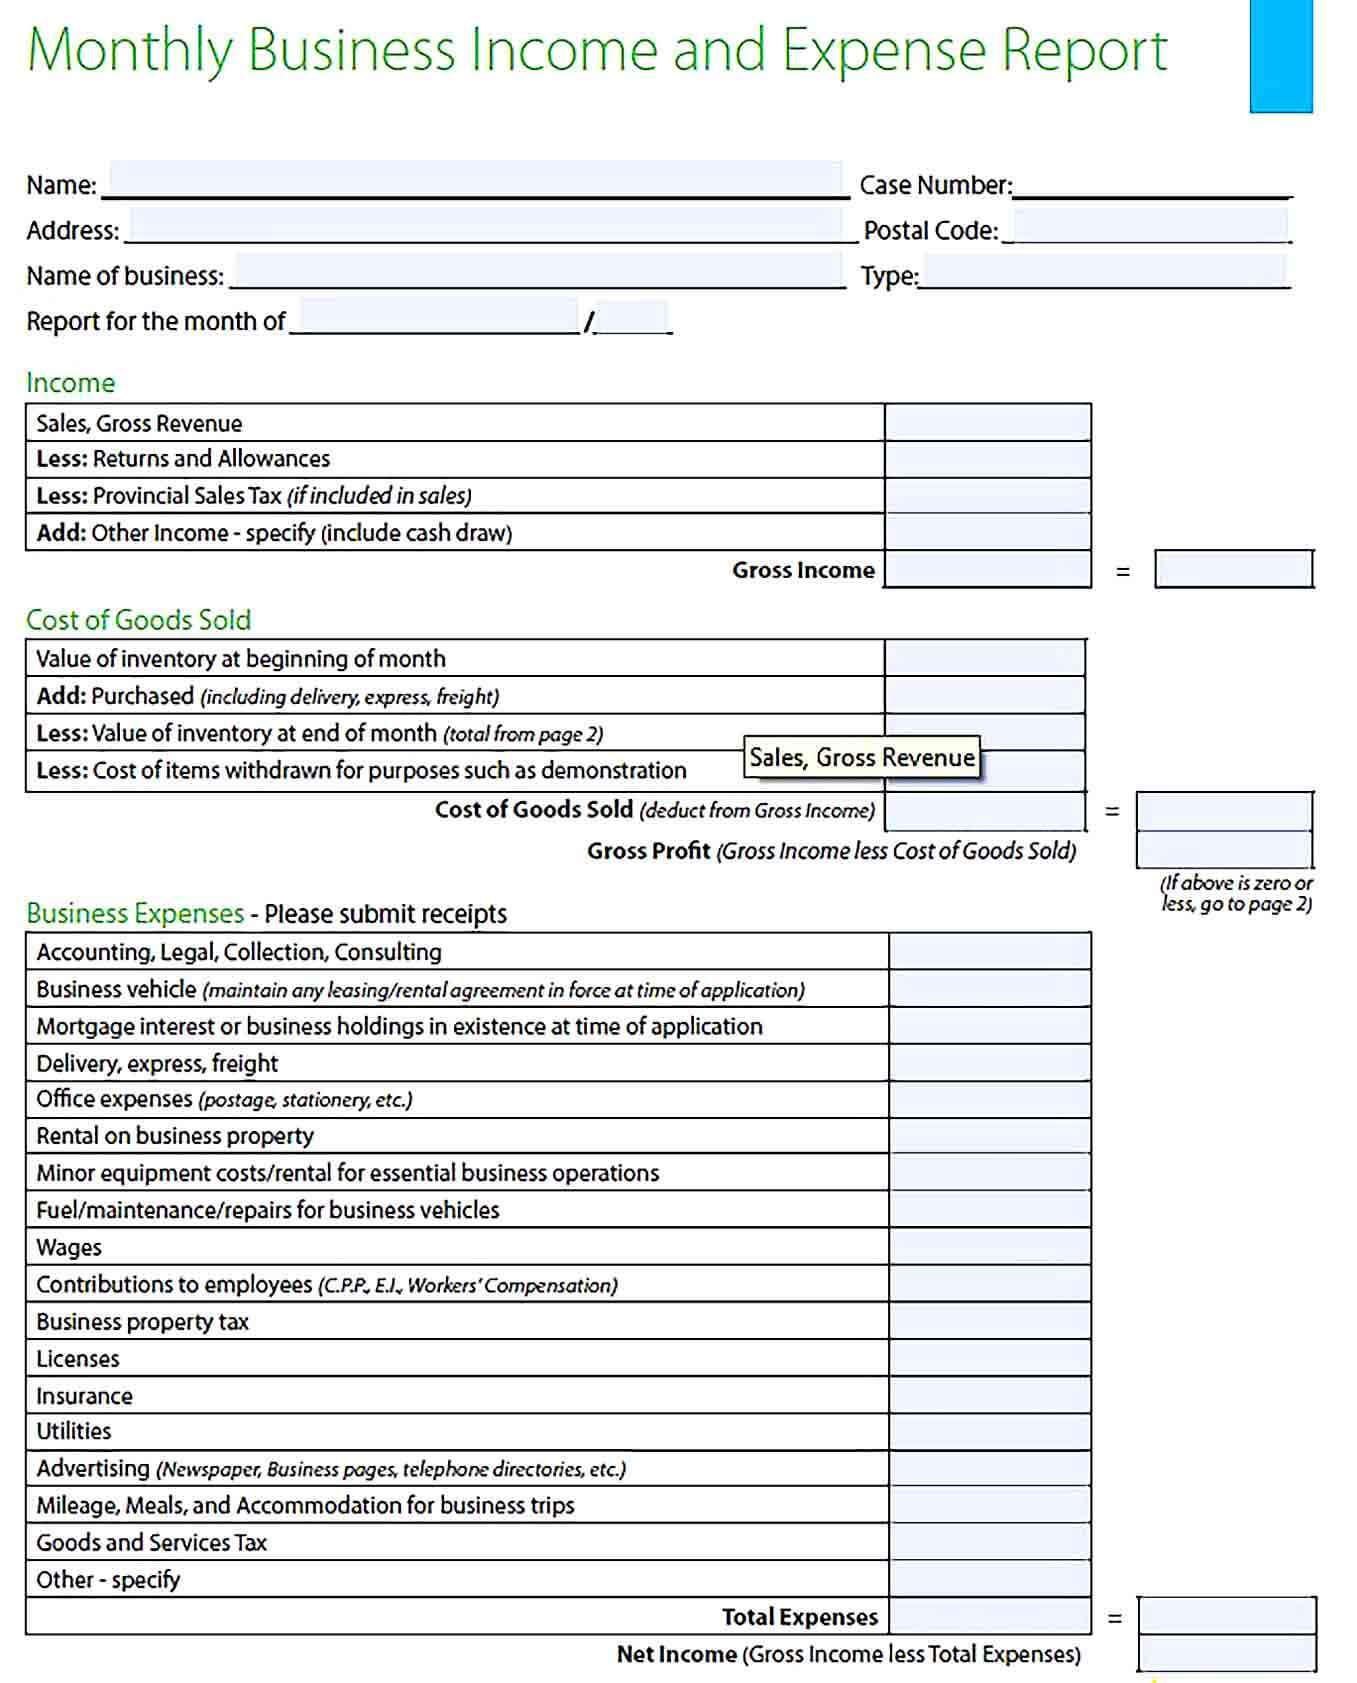 Sample Monthly Business Expense Report